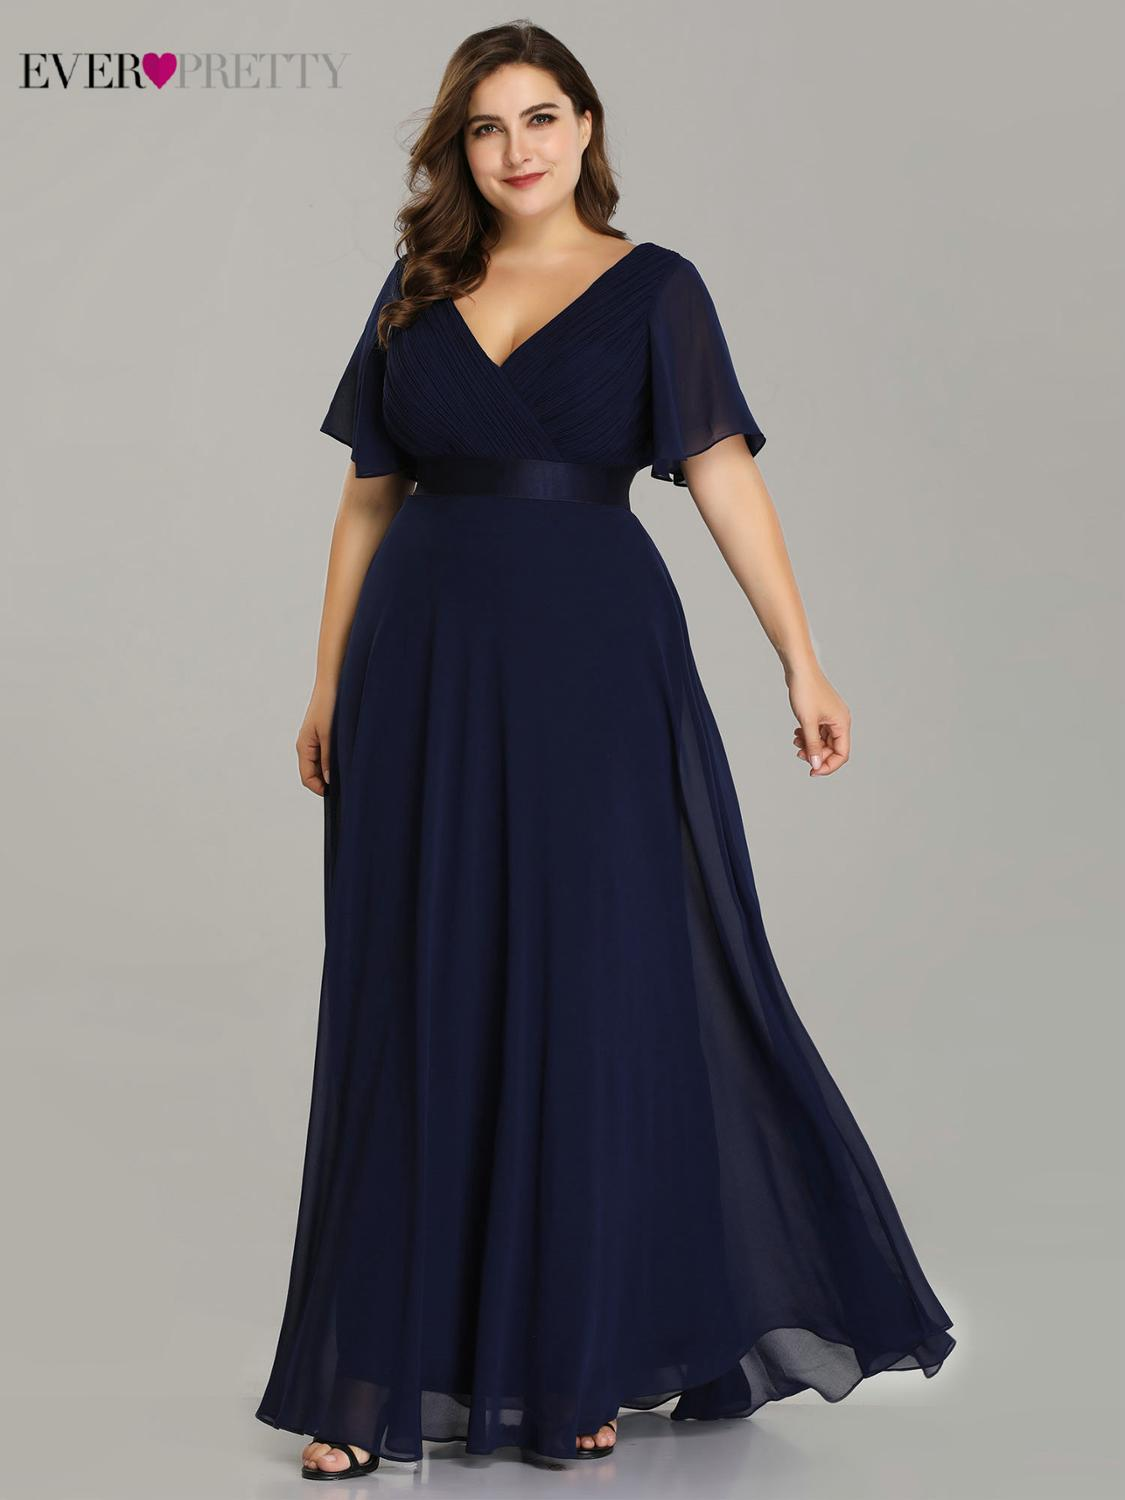 Party-Dress Evening-Dresses Robe-De-Soiree Ever Pretty Chiffon Formal Elegant Ruffles